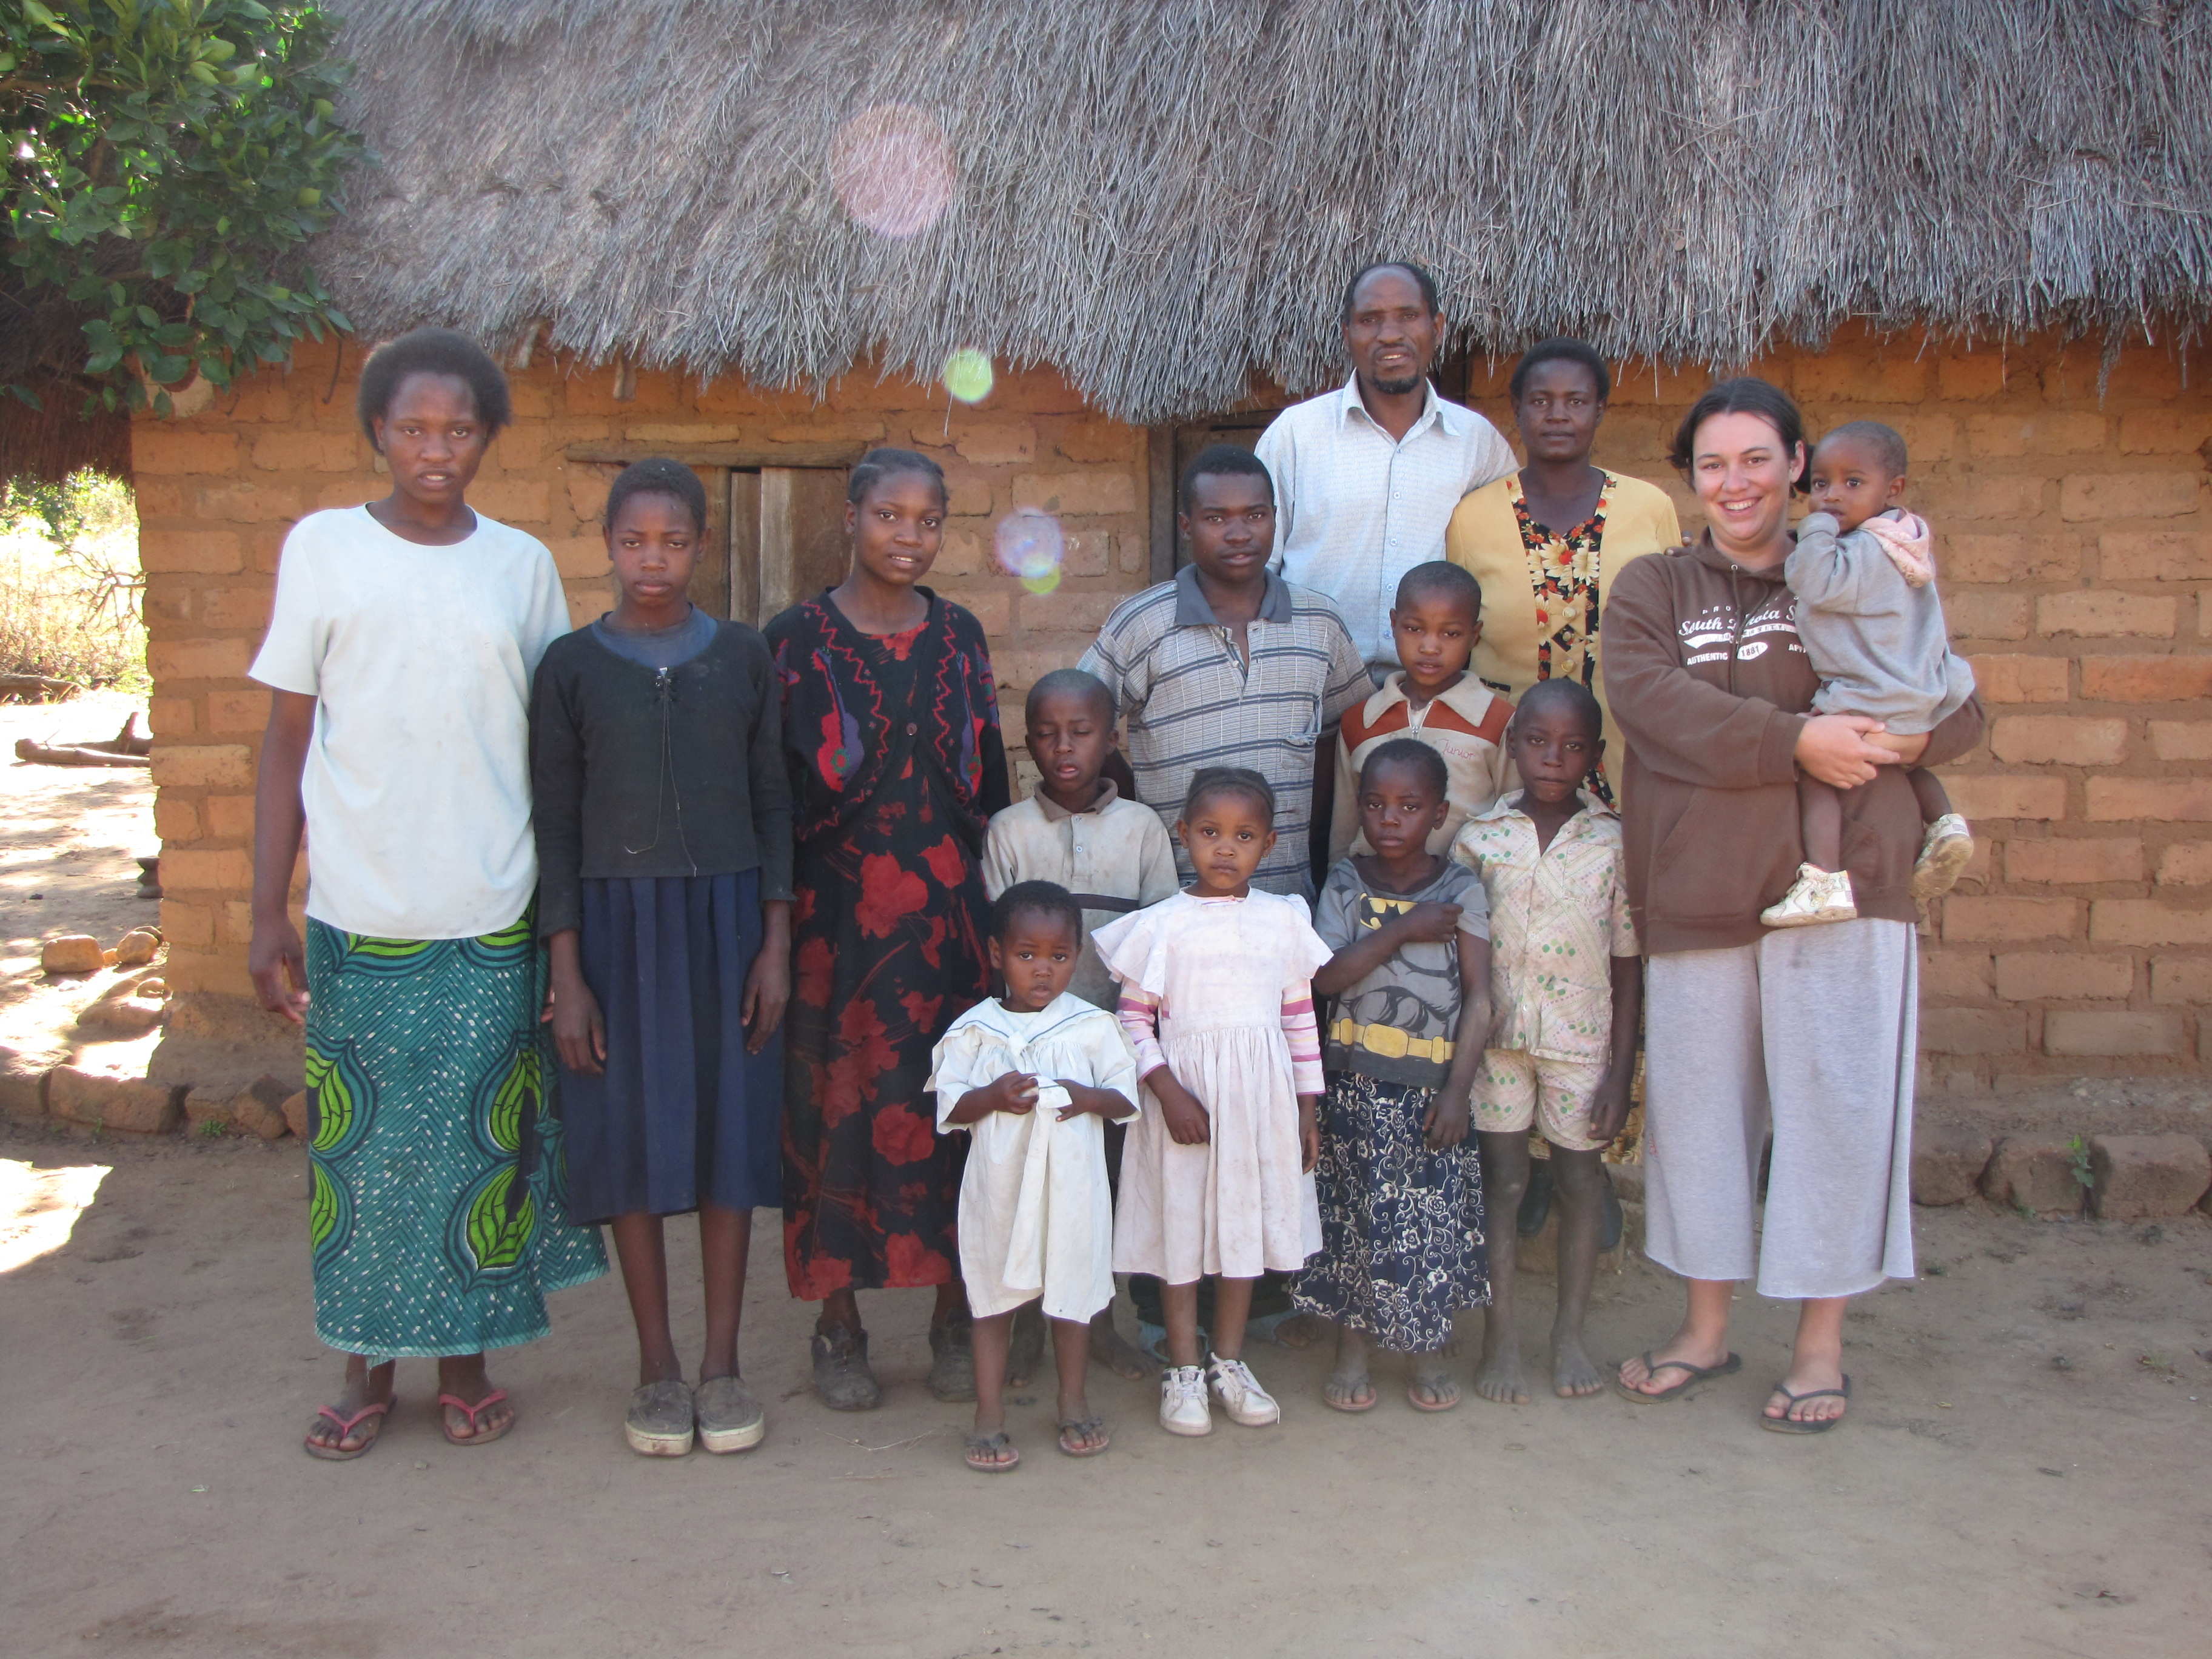 christa and her peace corps host family in front of the main family house